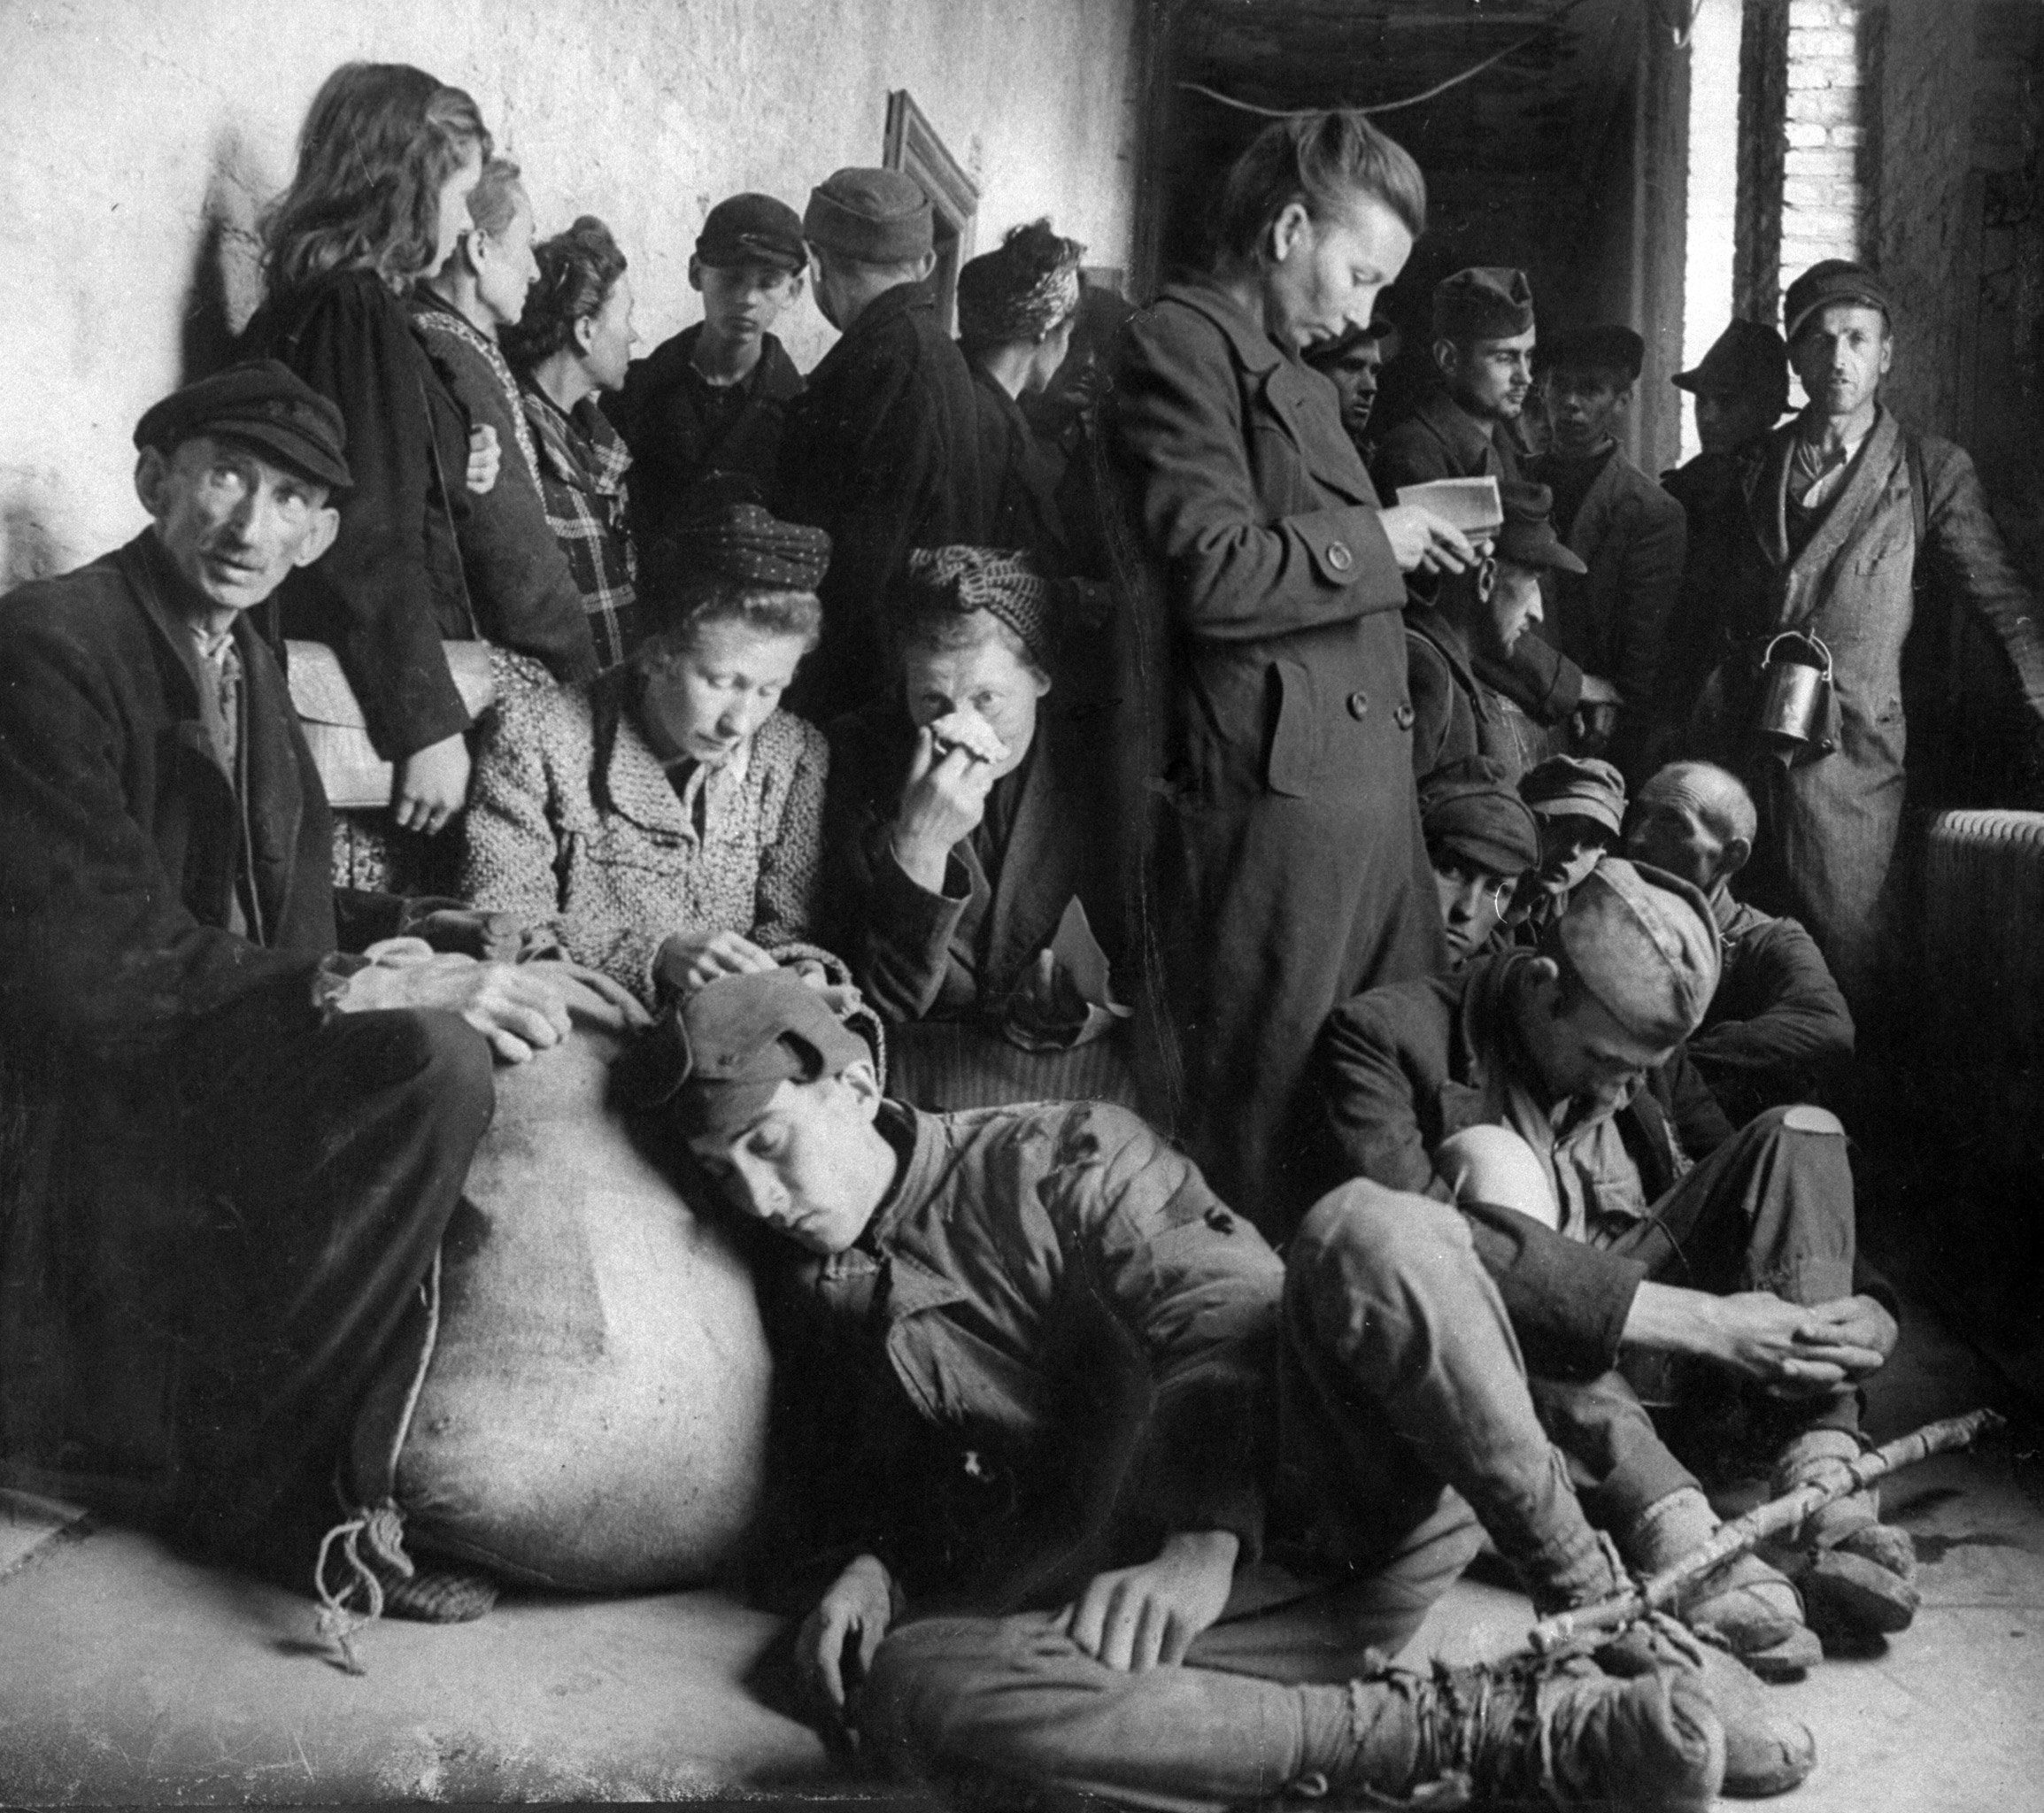 Exhausted, homeless German refugees huddled in a city municipal building seeking shelter. 1945.